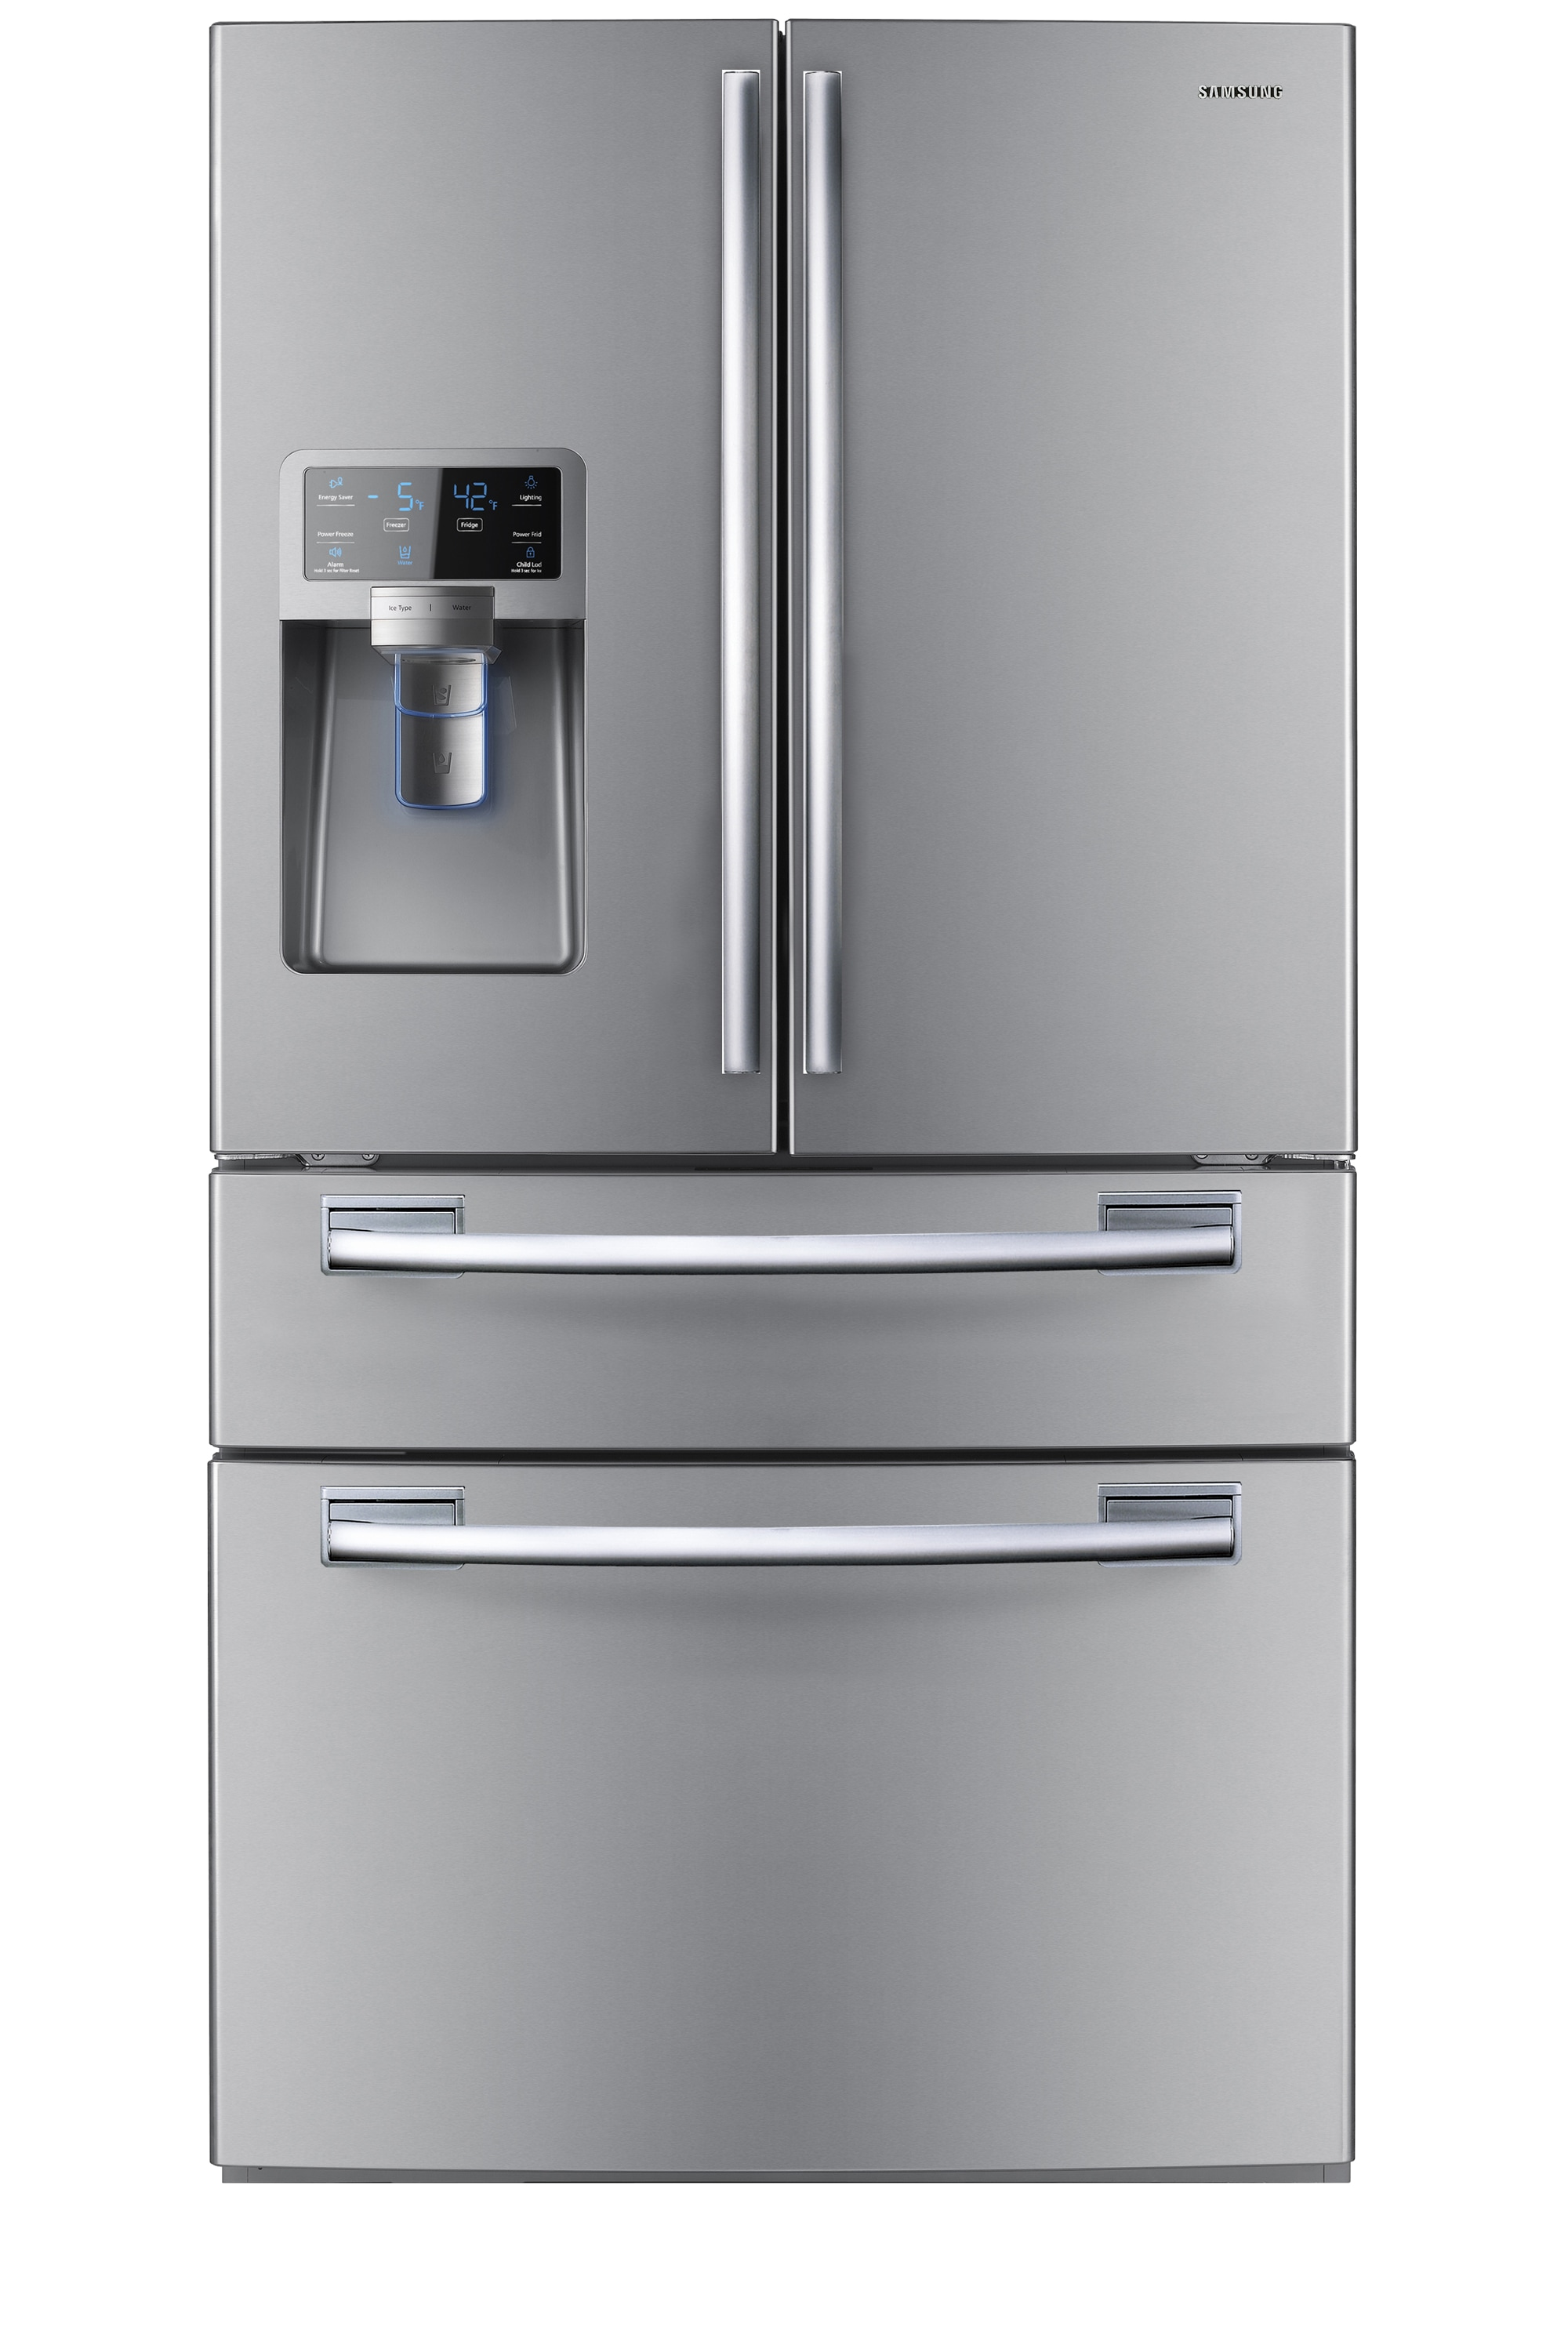 AW3 FDR with Water & Ice Dispenser, 27.7 cu. Ft., Real Stainless